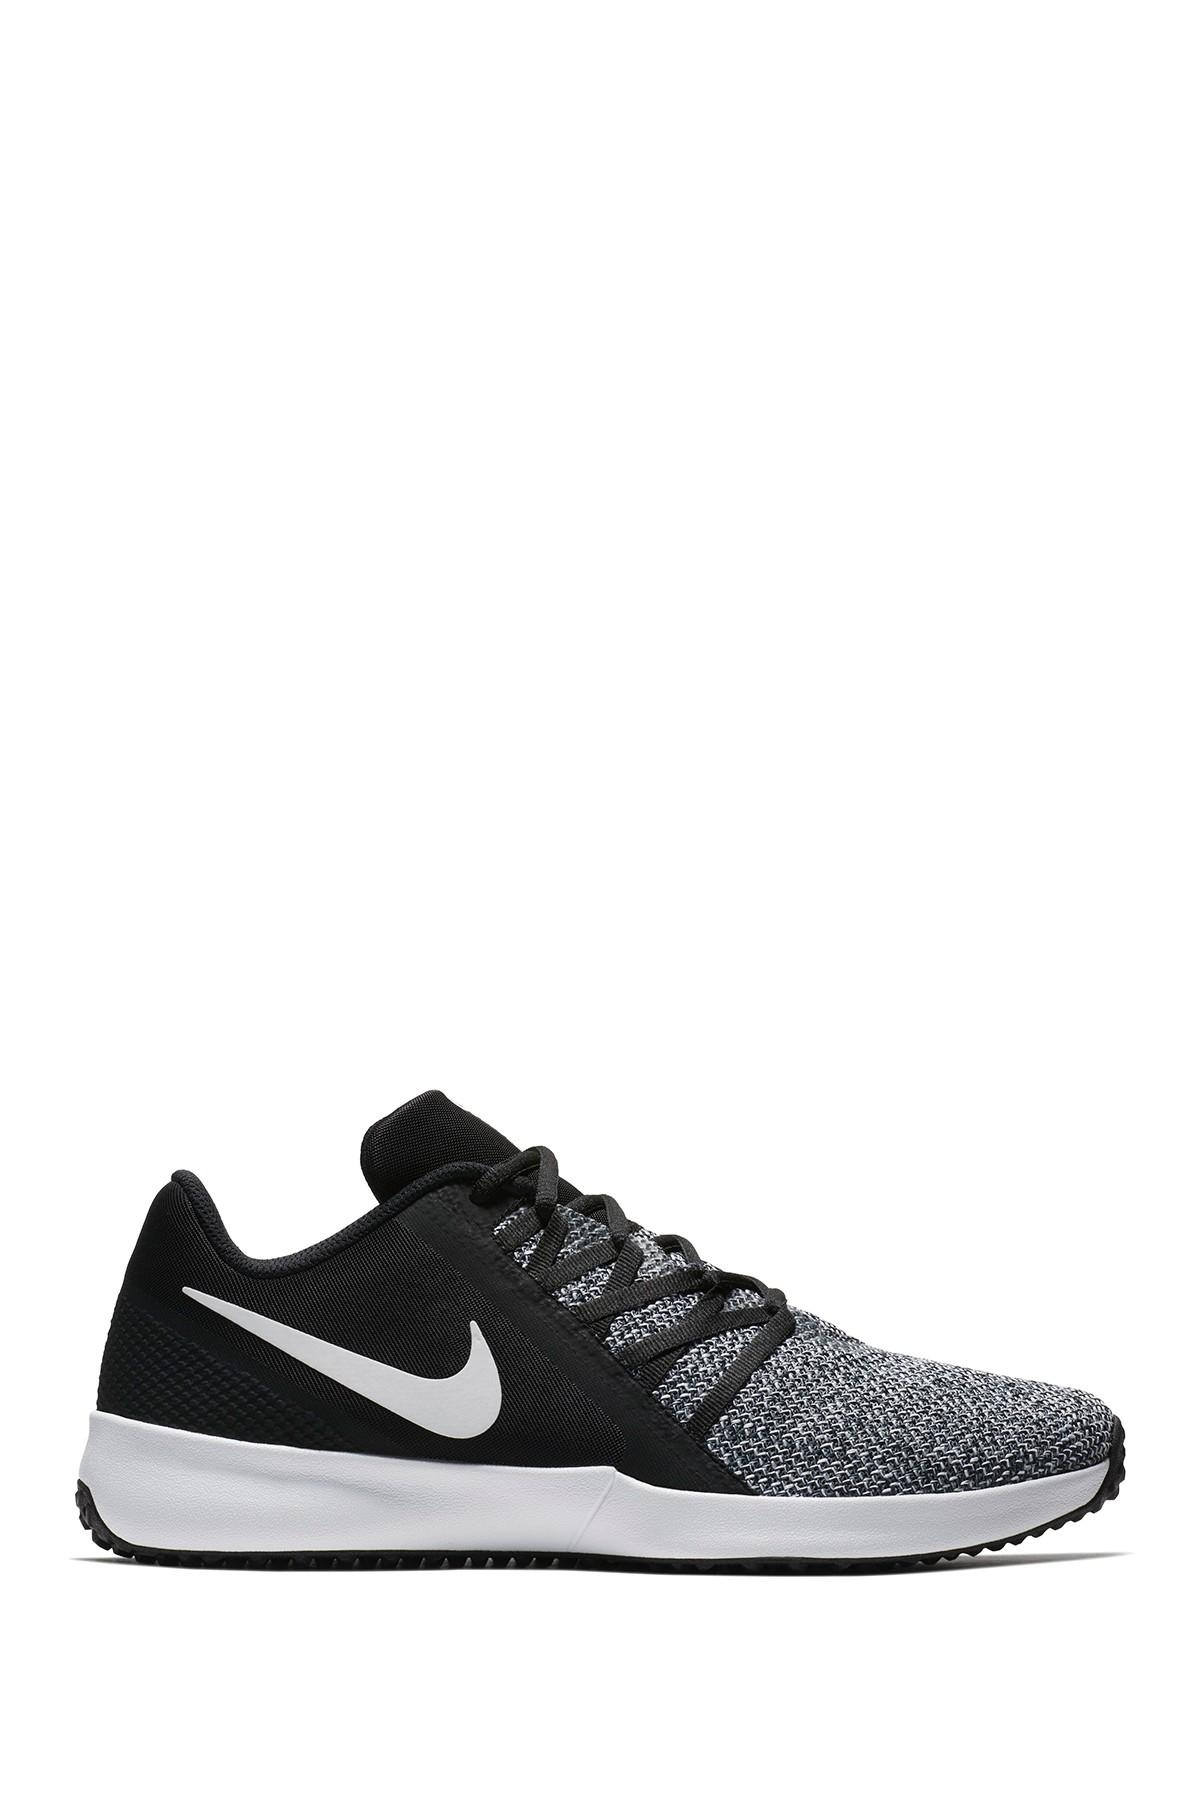 5e3391ecbde16 Lyst - Nike Varsity Compete Trainer Training Sneakers From Finish ...